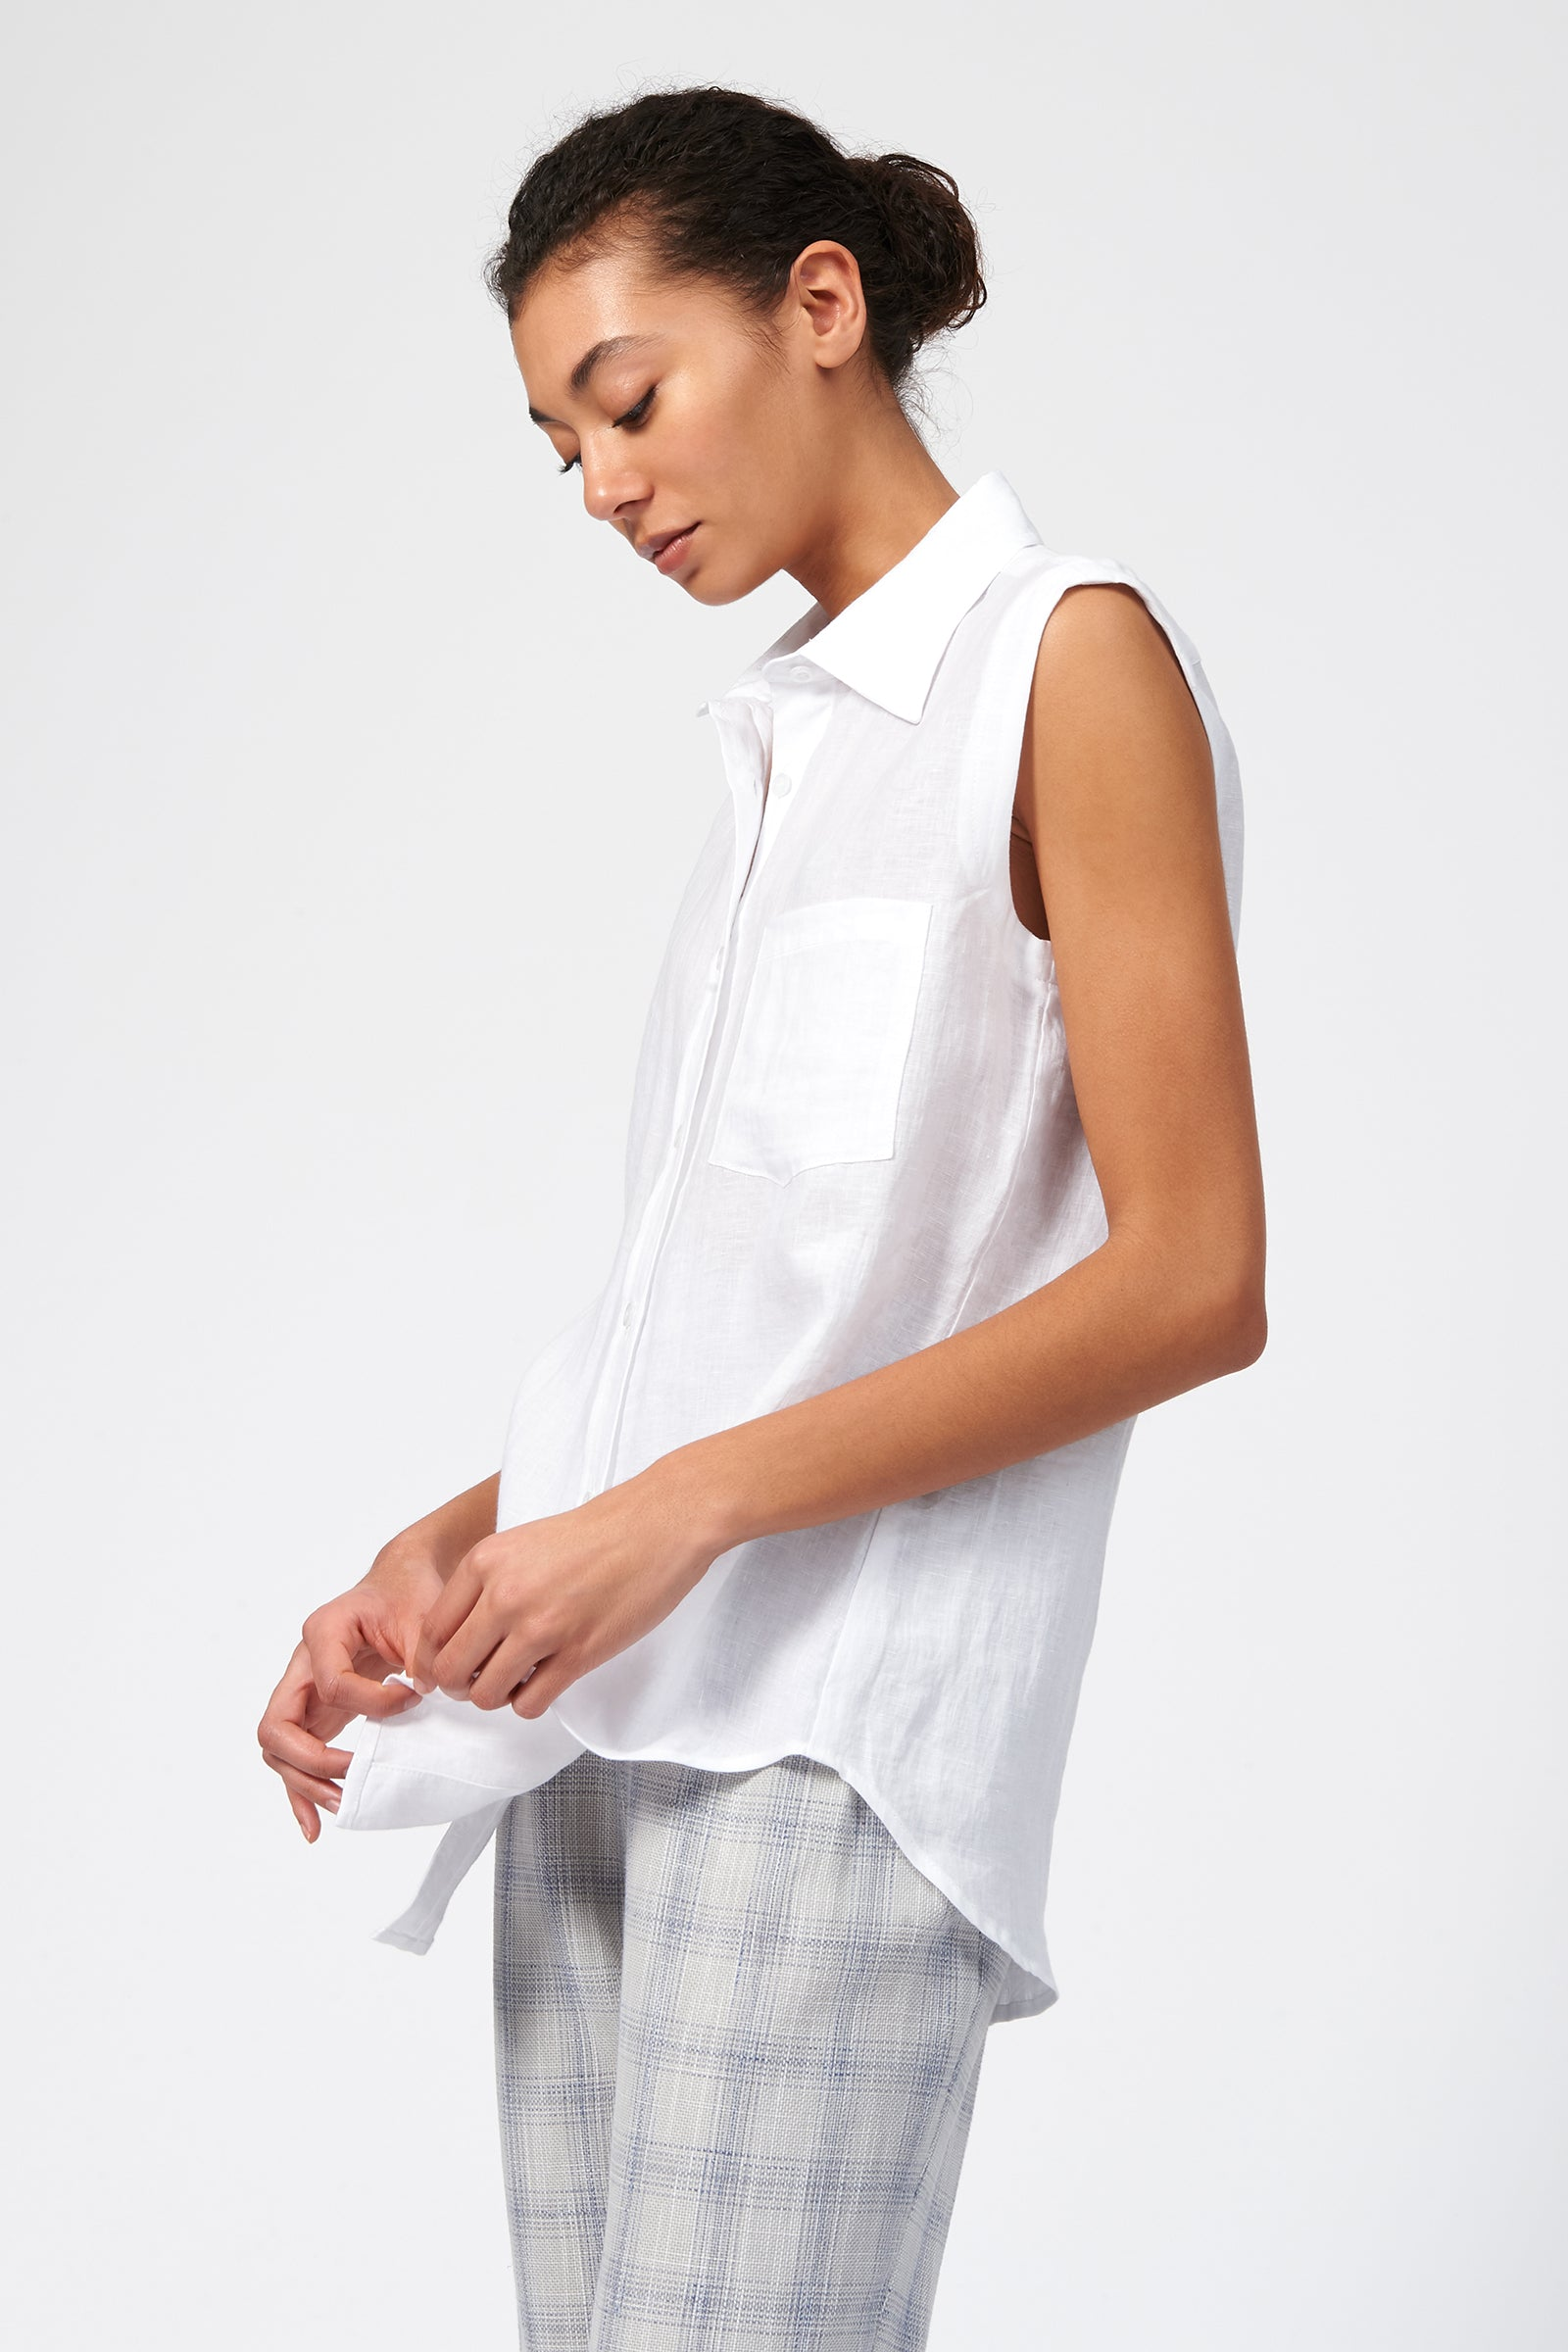 Kal Rieman Sleeveless Summer Shirt in White Linen on Model Side View